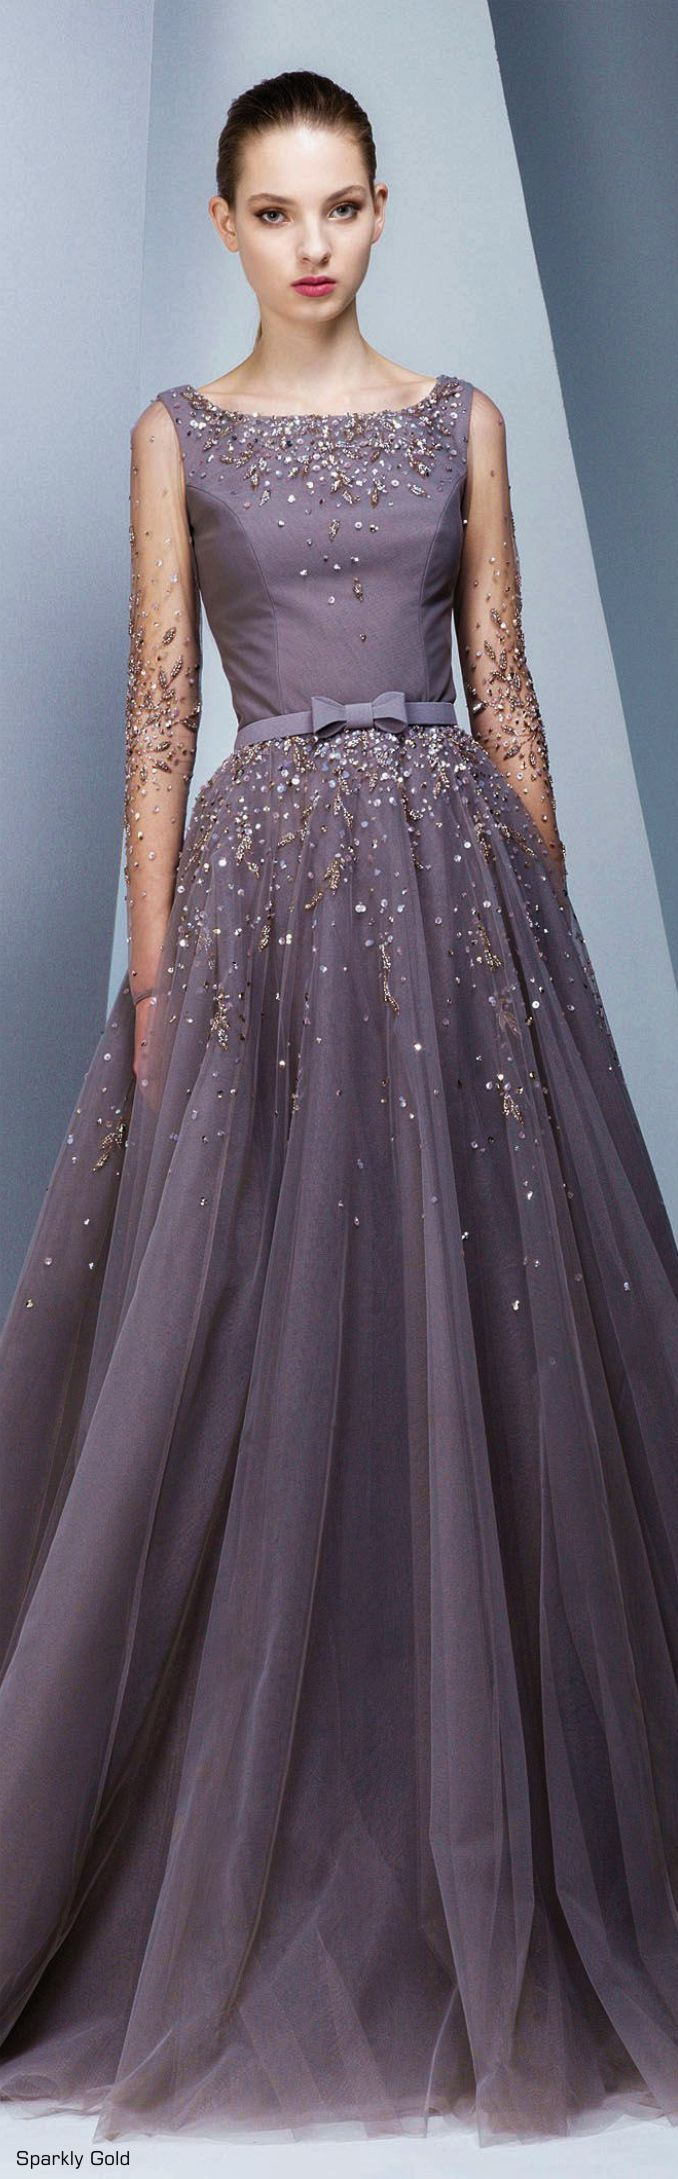 202 best High Fashion images on Pinterest